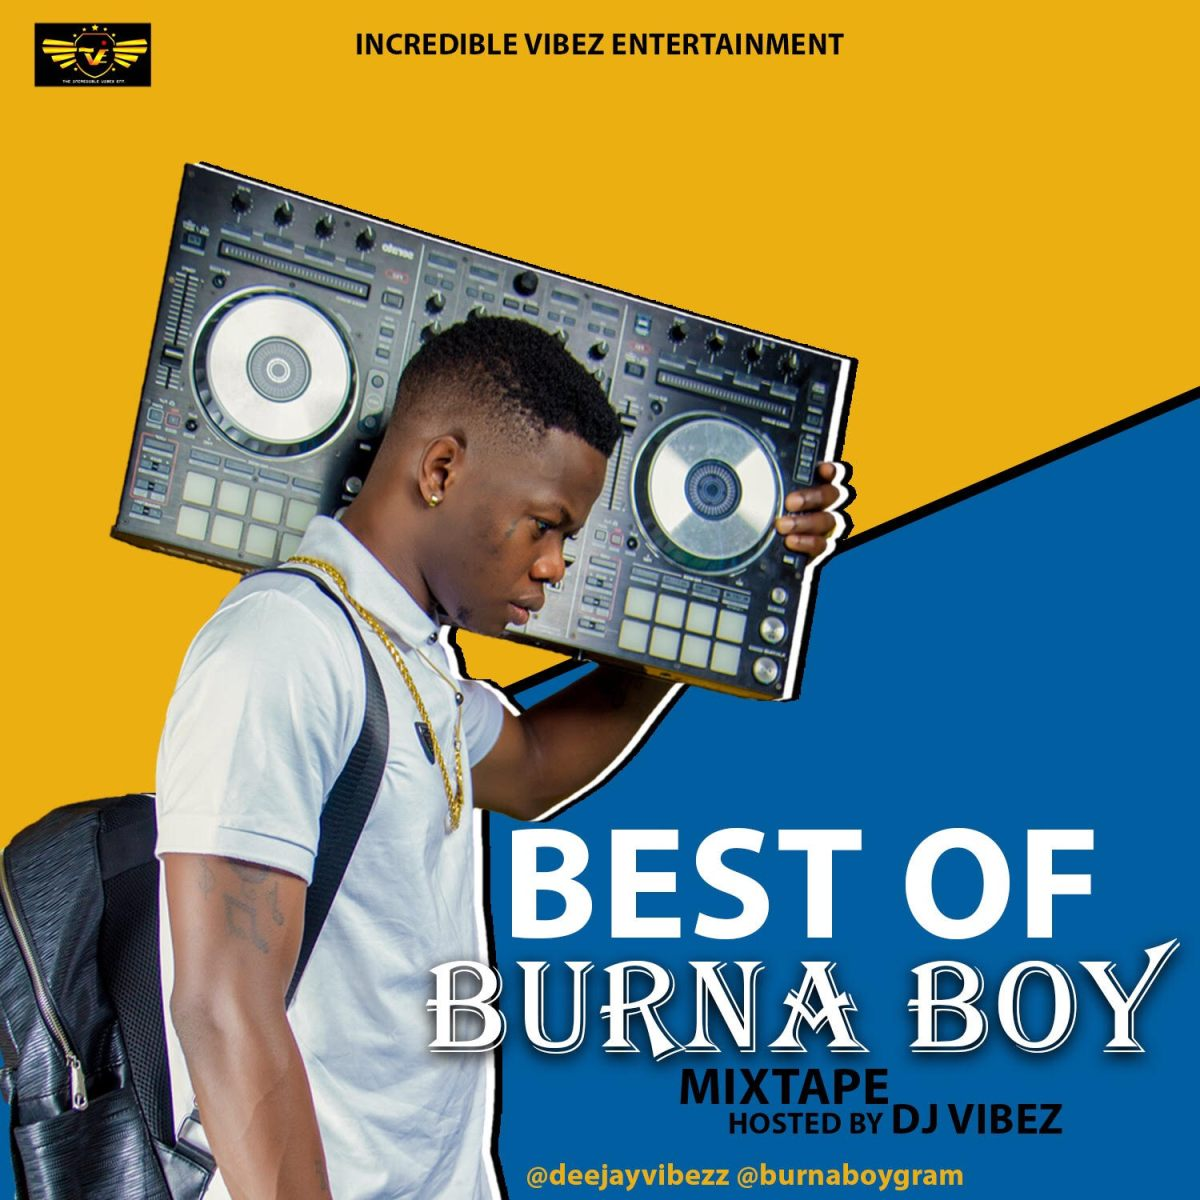 MIXTAPE: DJ Vibez - Best Of Burna Boy Mix